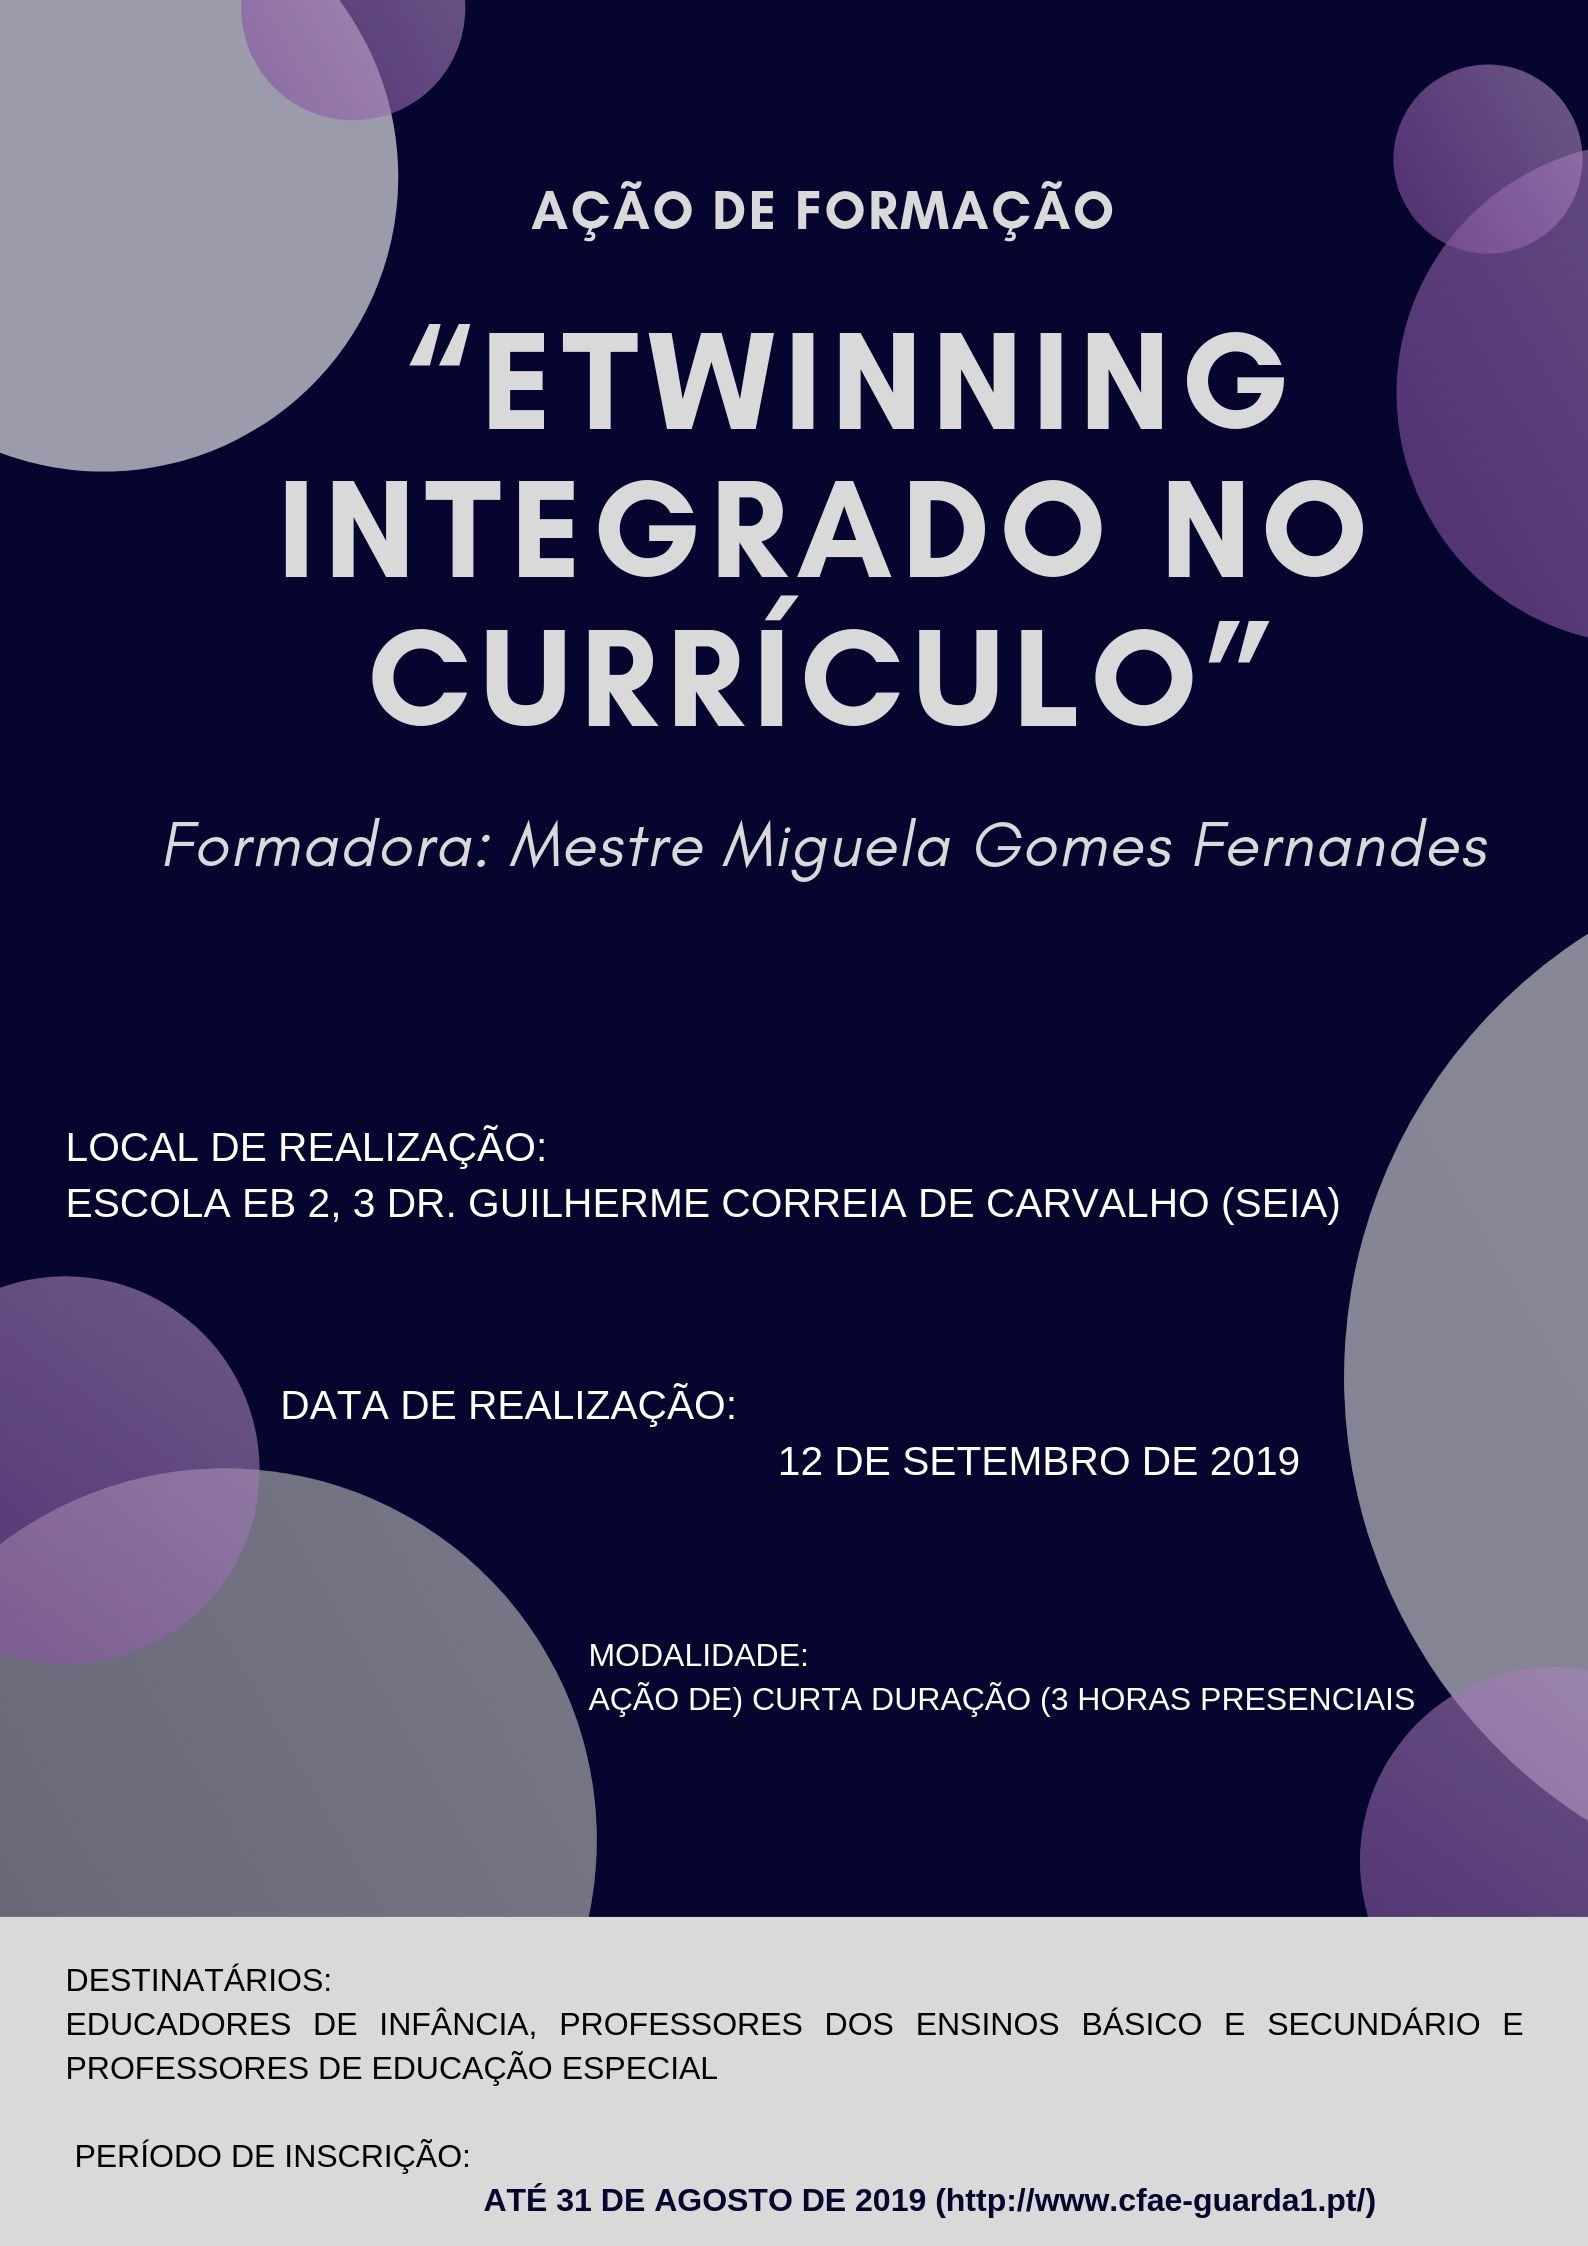 eTwinning integrado no currículo